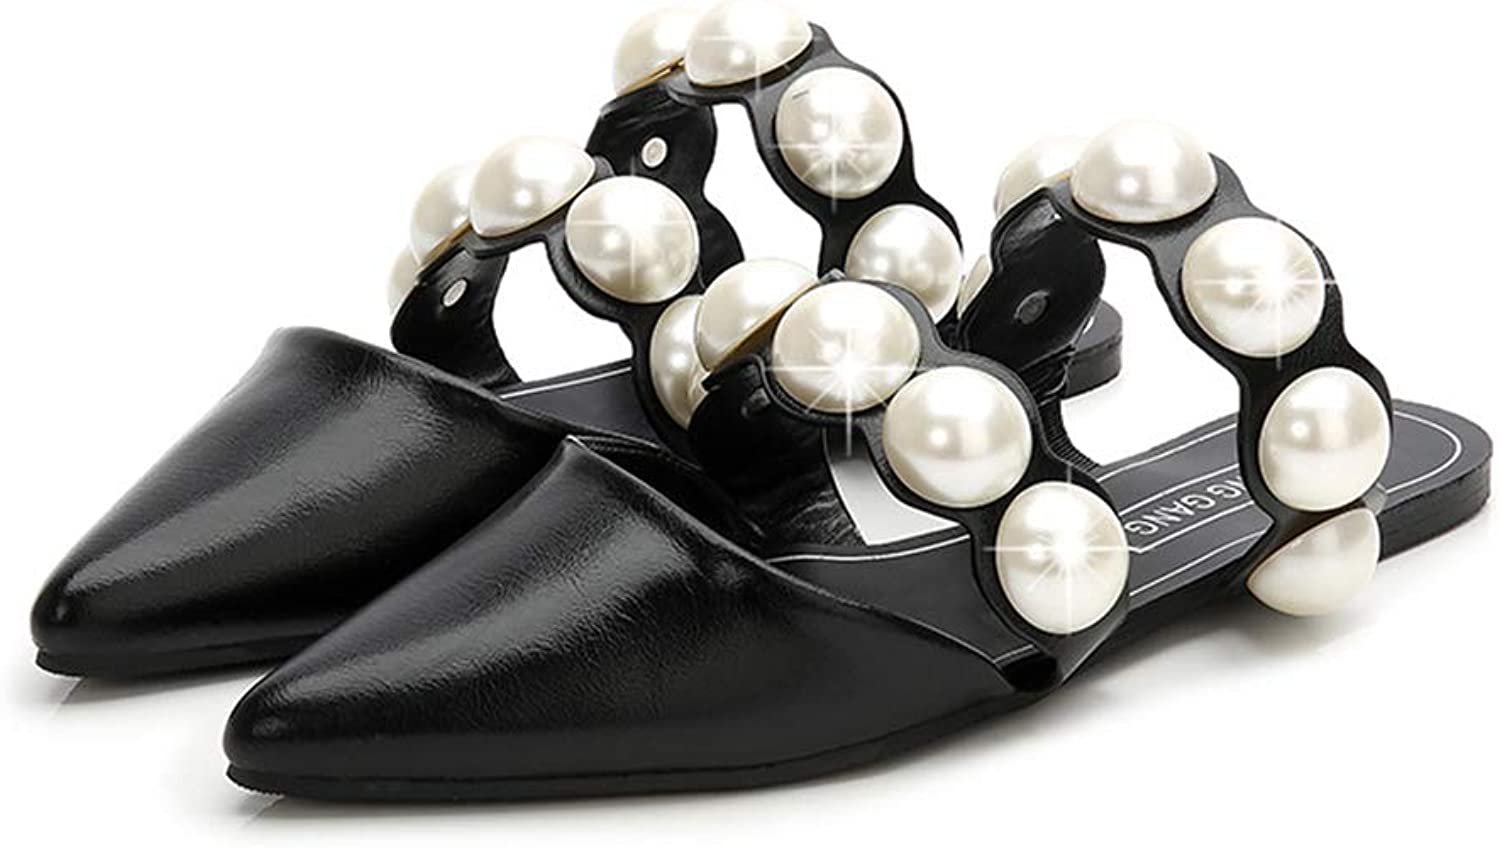 Brilliant sun Womens Pointed Toe Pearl Decorated Slip On Low Heeled Mules Flat Slides Sandals shoes